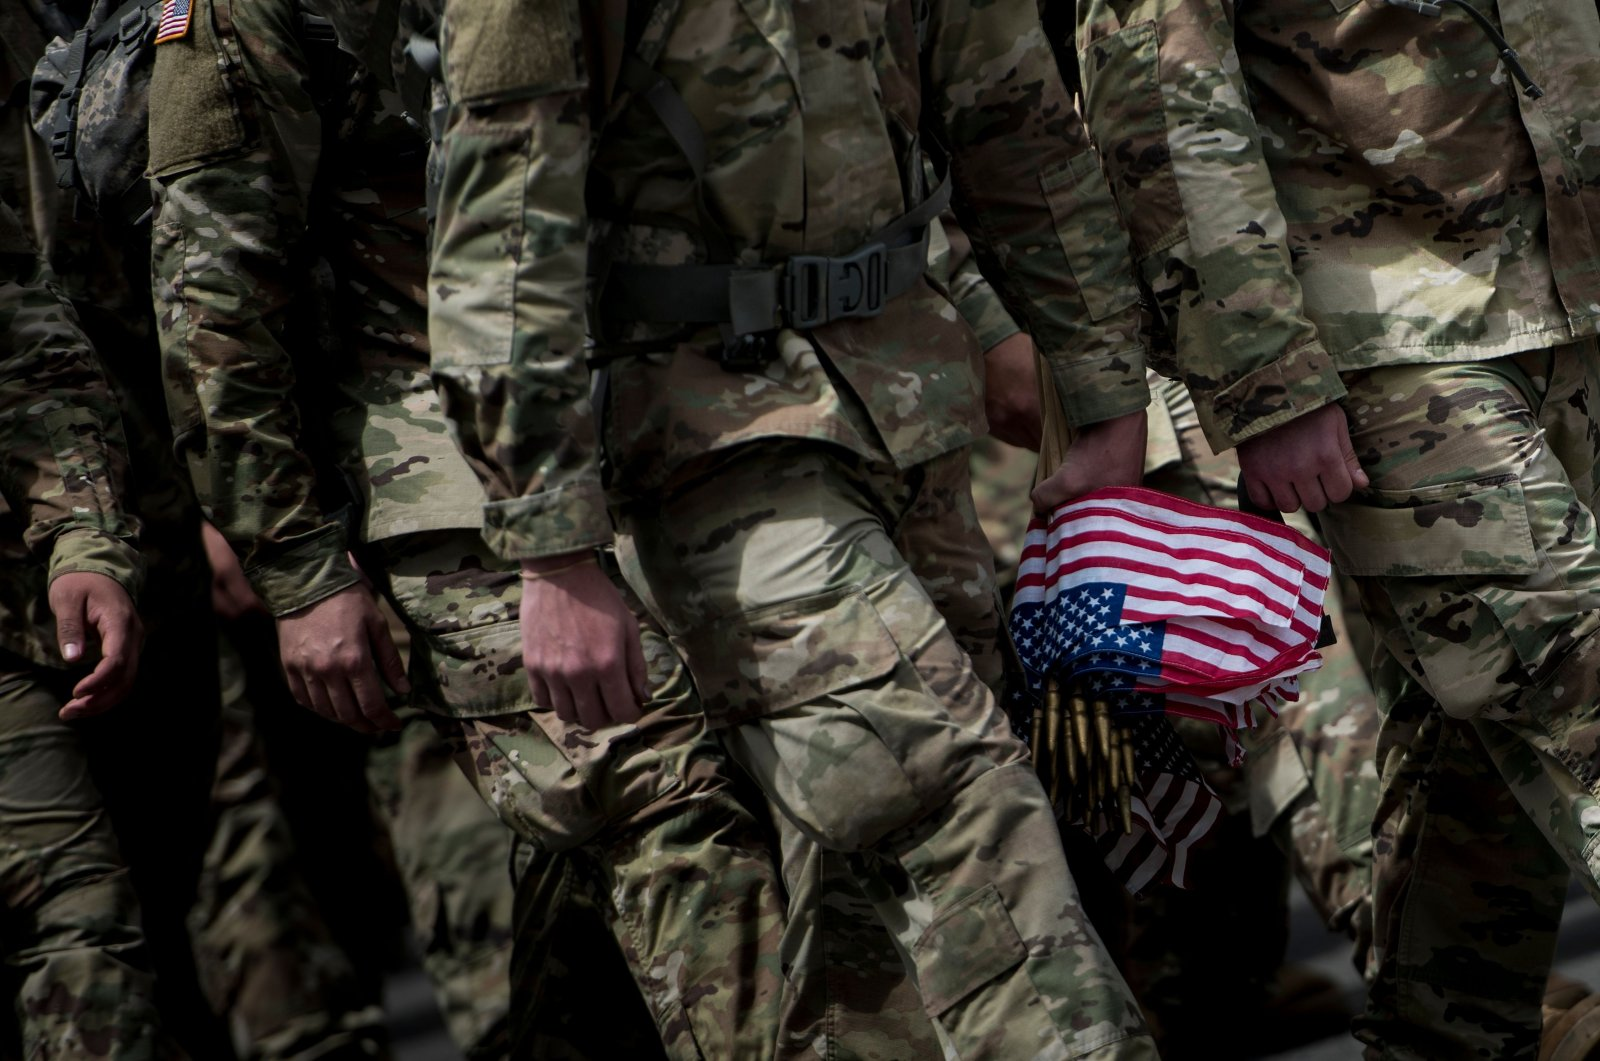 """Soldiers in the Old Guard arrive to place flags at graves in Arlington National Cemetery during """"Flags In"""" in preparation for Memorial Day in Arlington, Virginia on May 25, 2017. (AFP Photo)"""